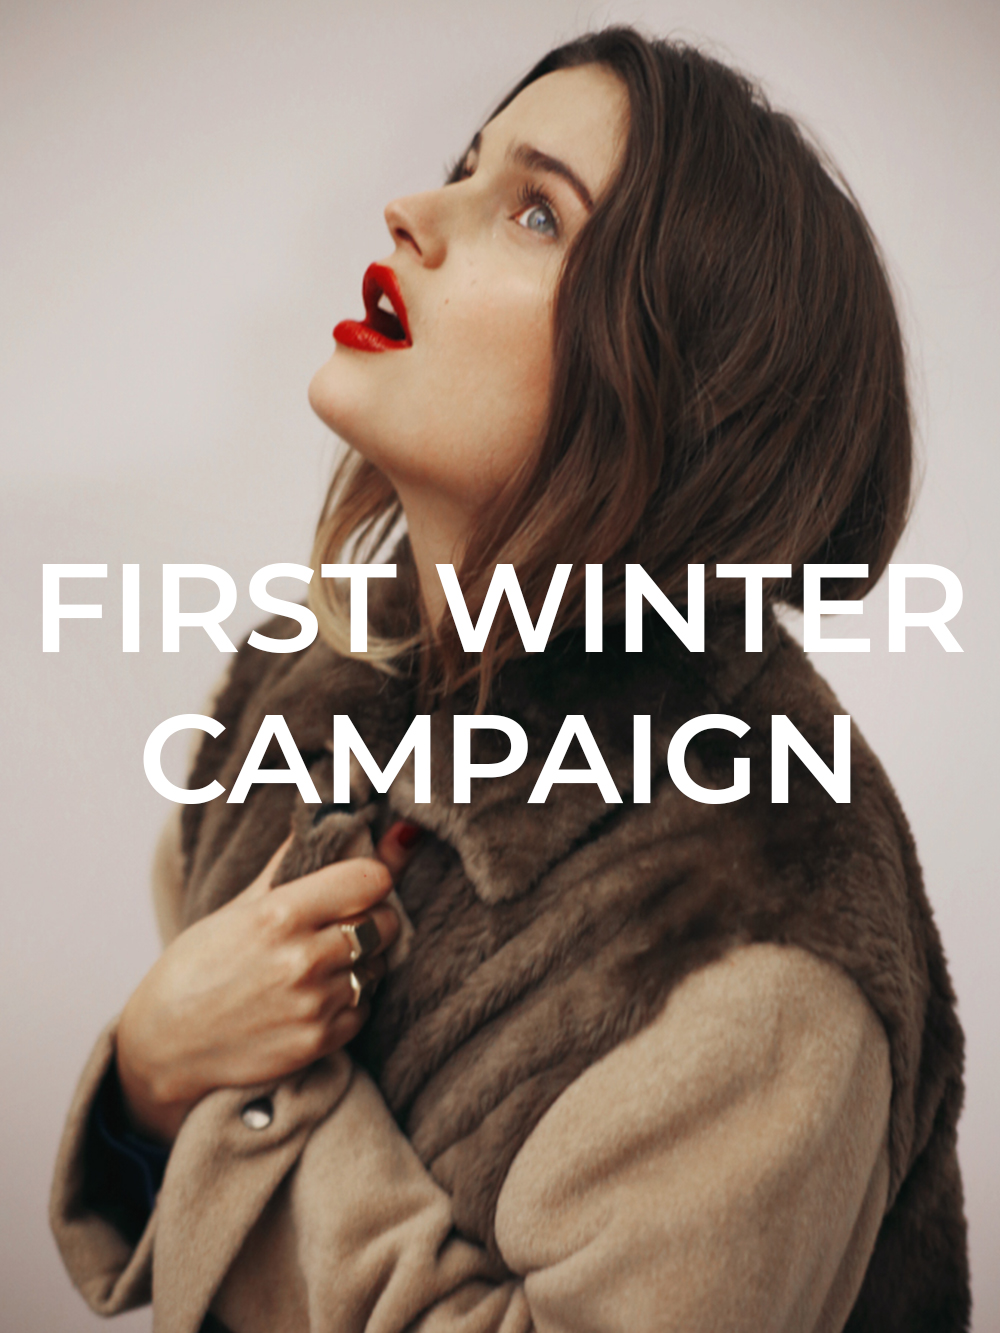 FIRST-WINTER-CAMPAIGN.jpg